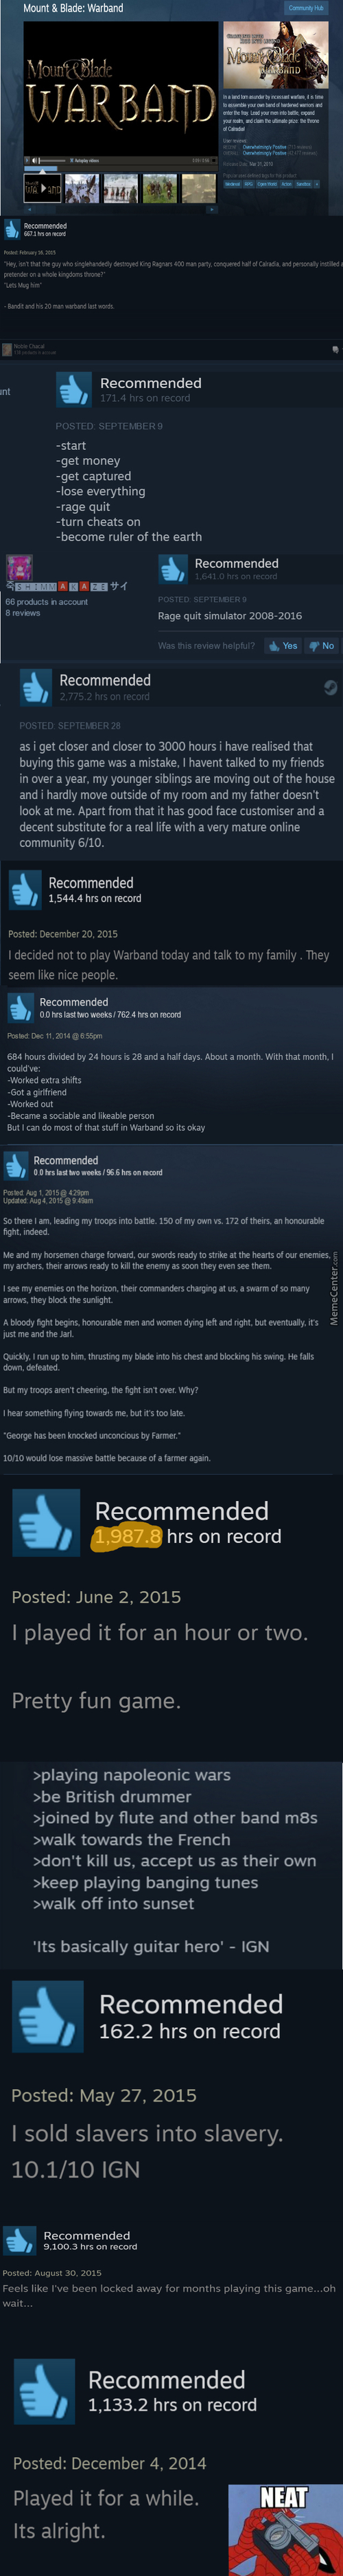 #juststeamreviews